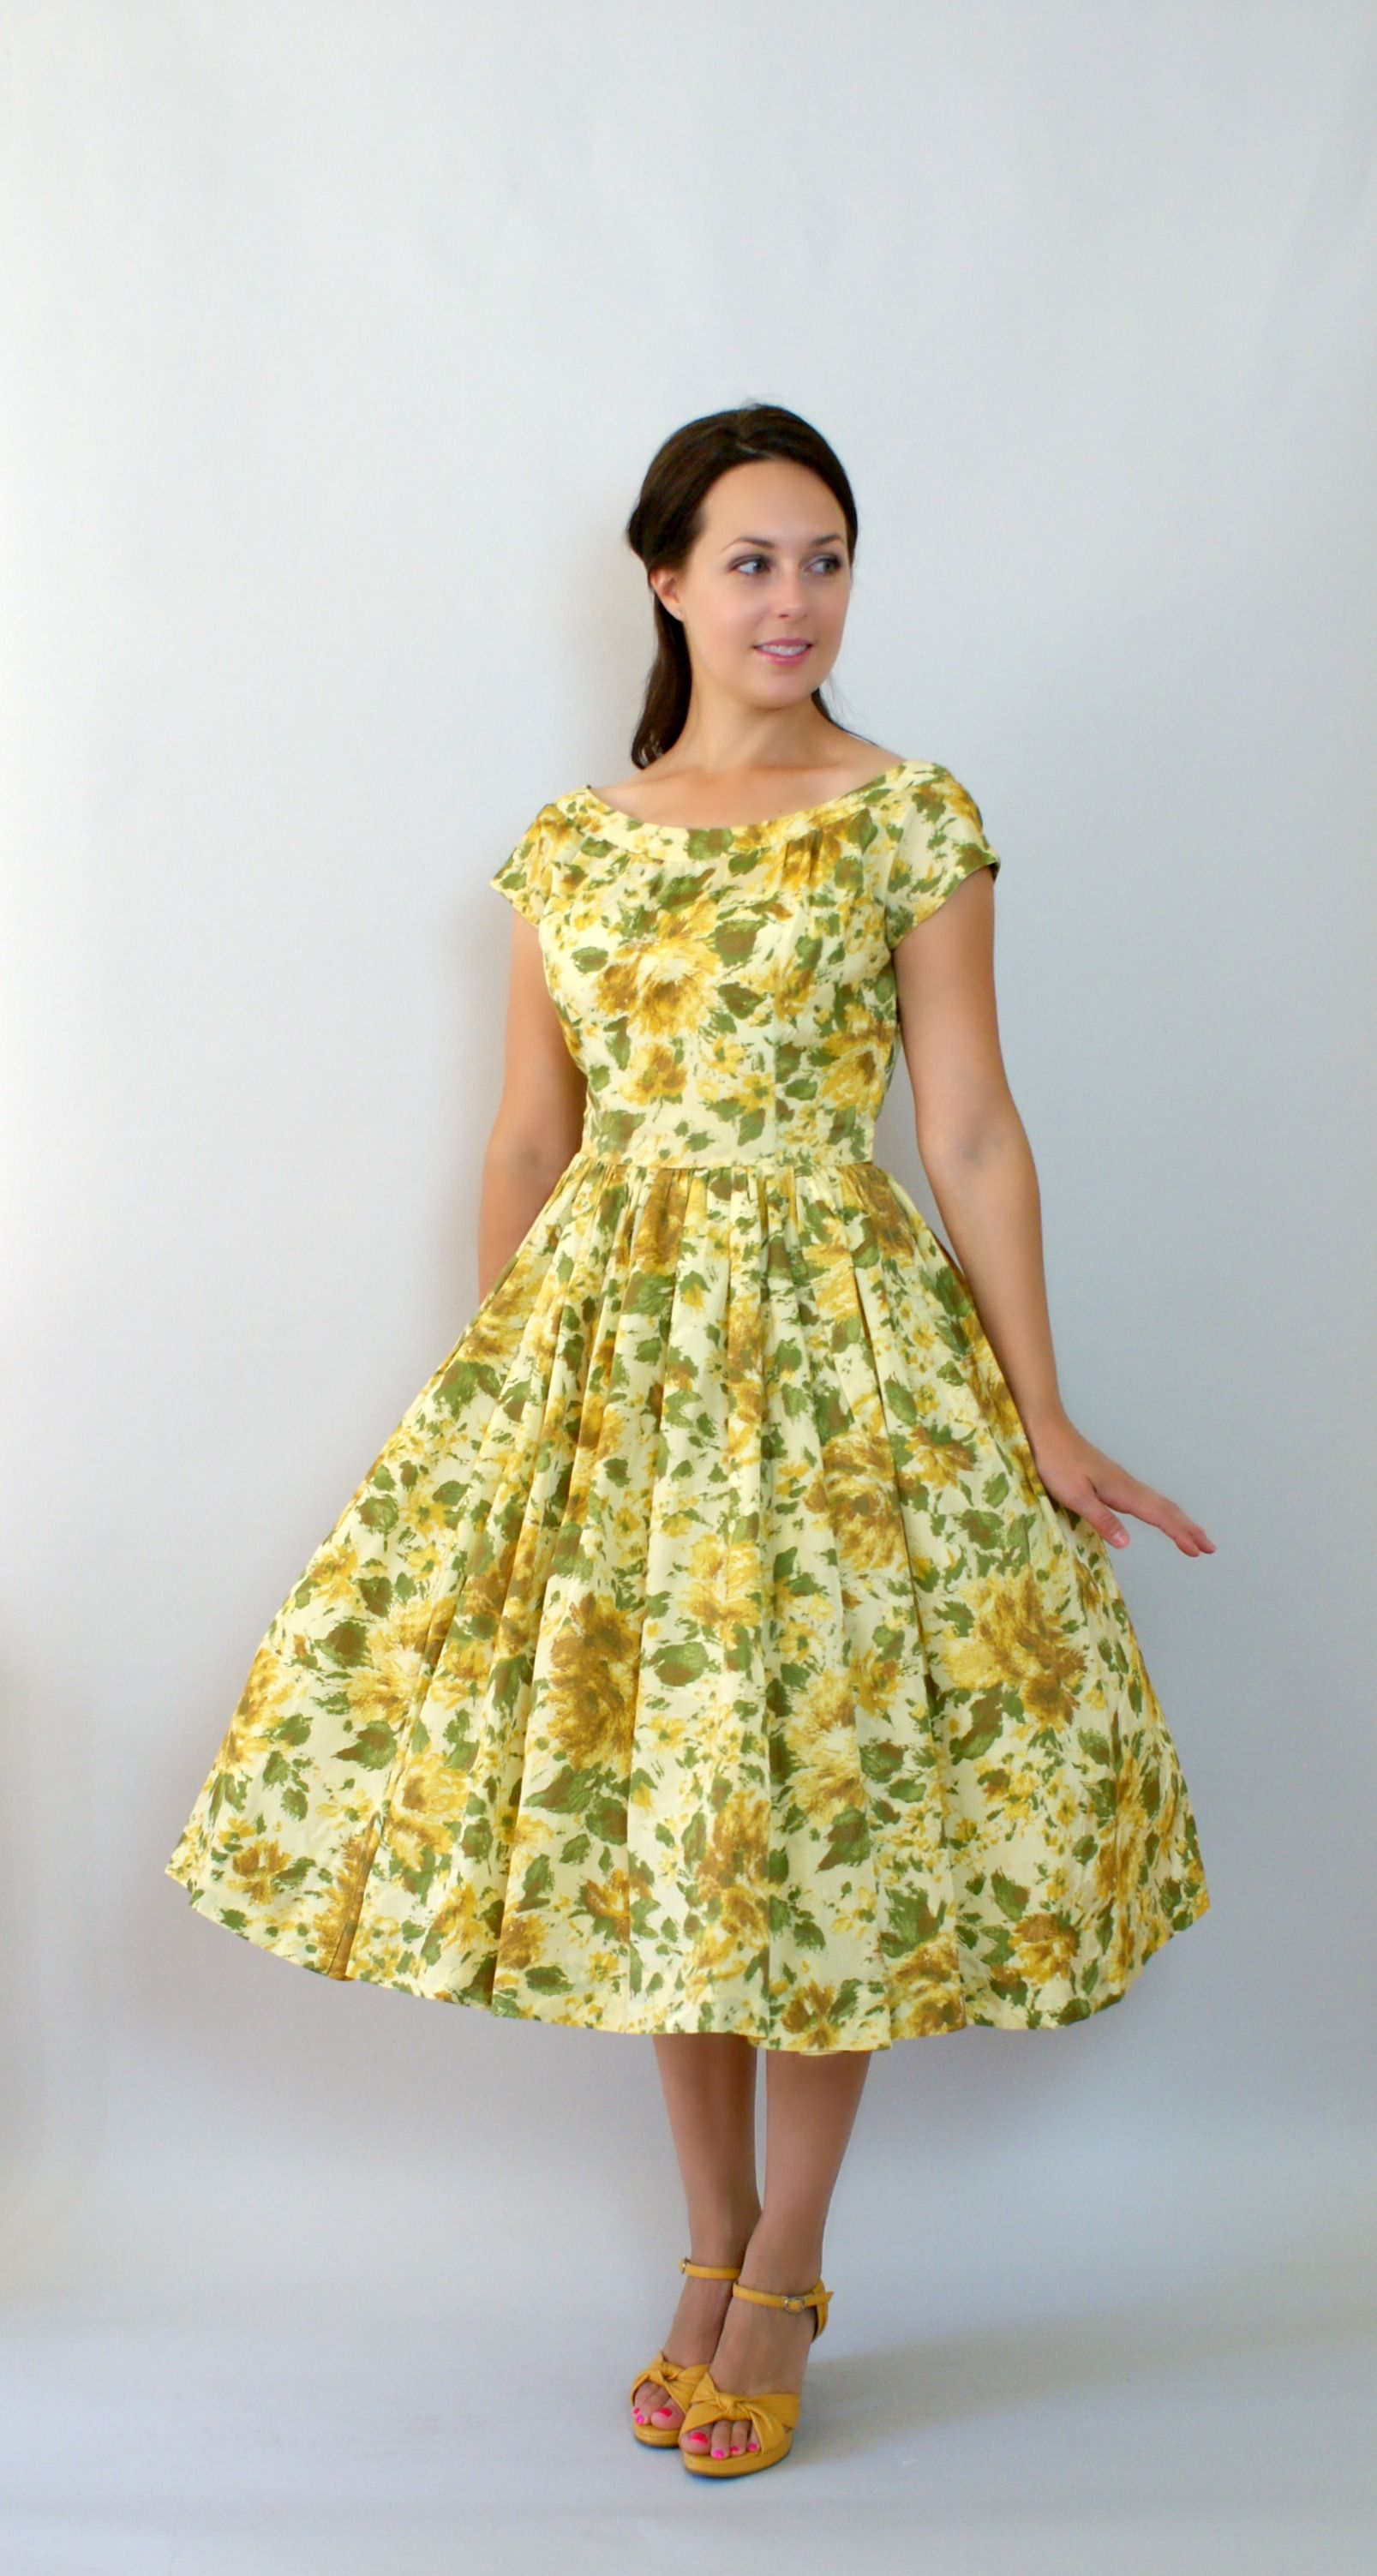 1950s Party Prom Formal Dress from Sweet Bee Finds